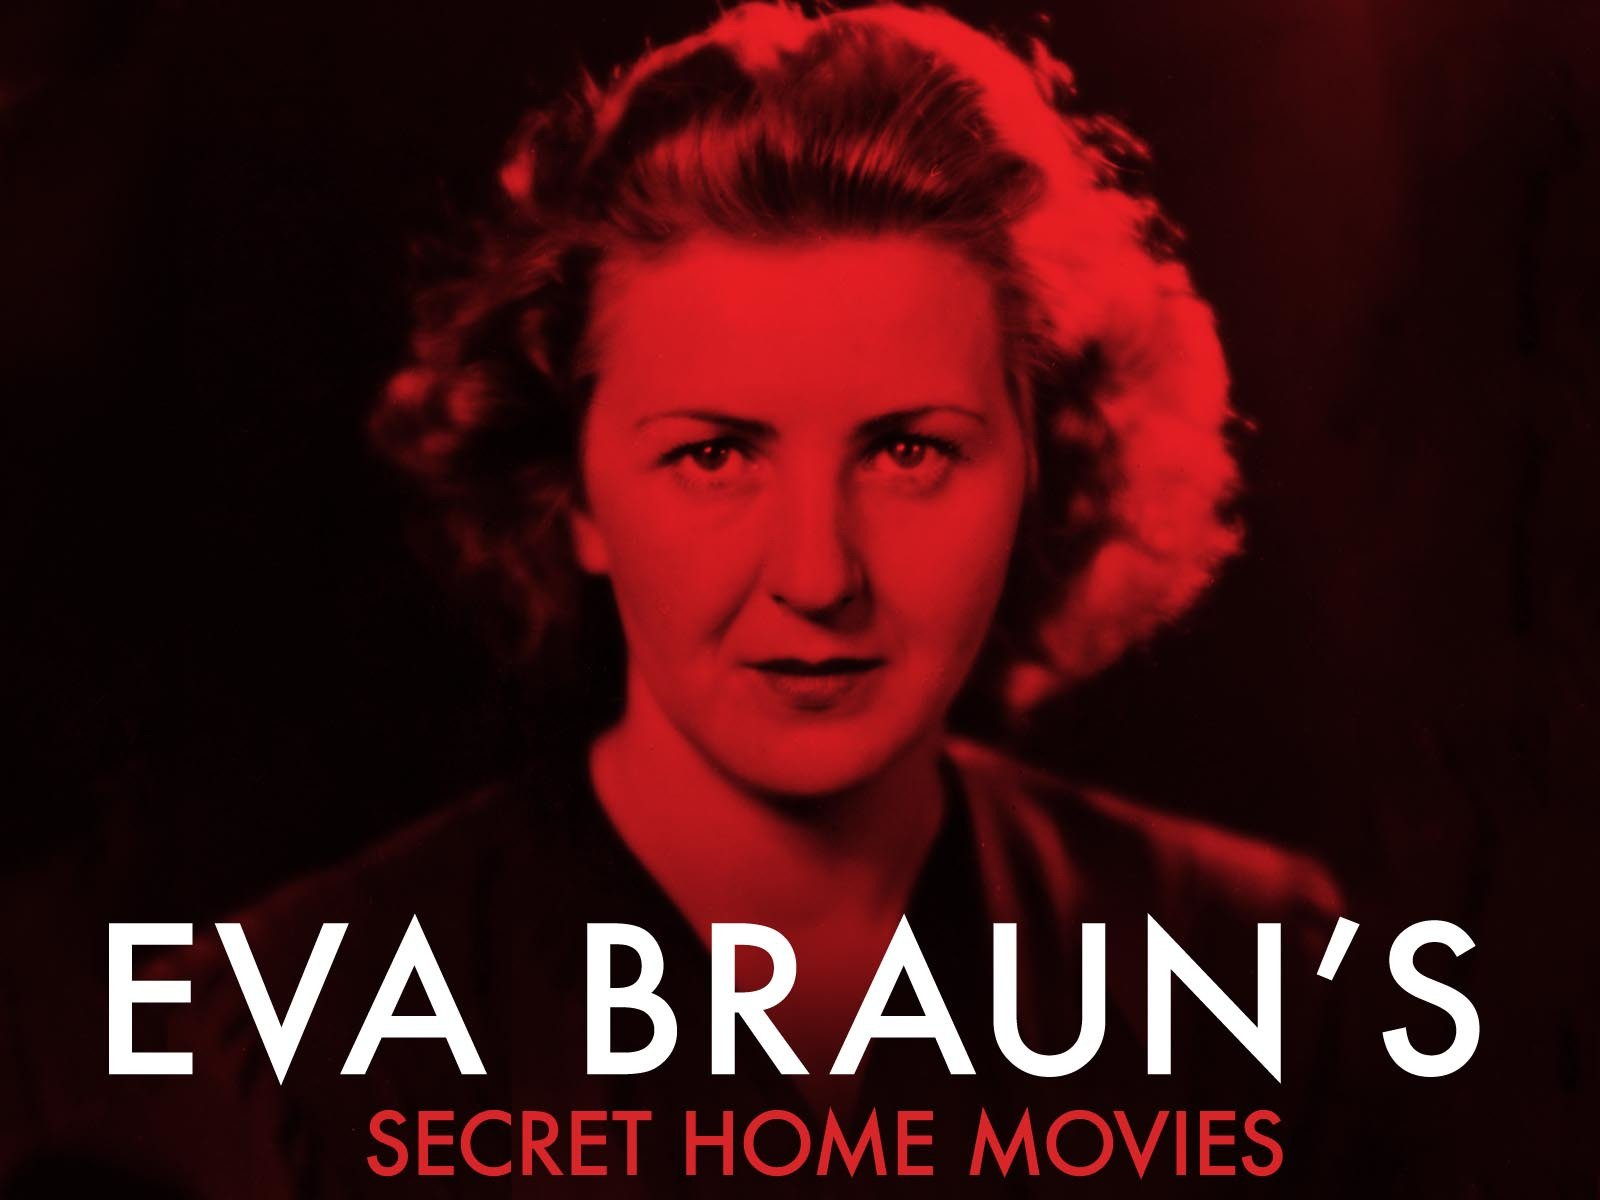 Eva Braun's Secret Home Movies